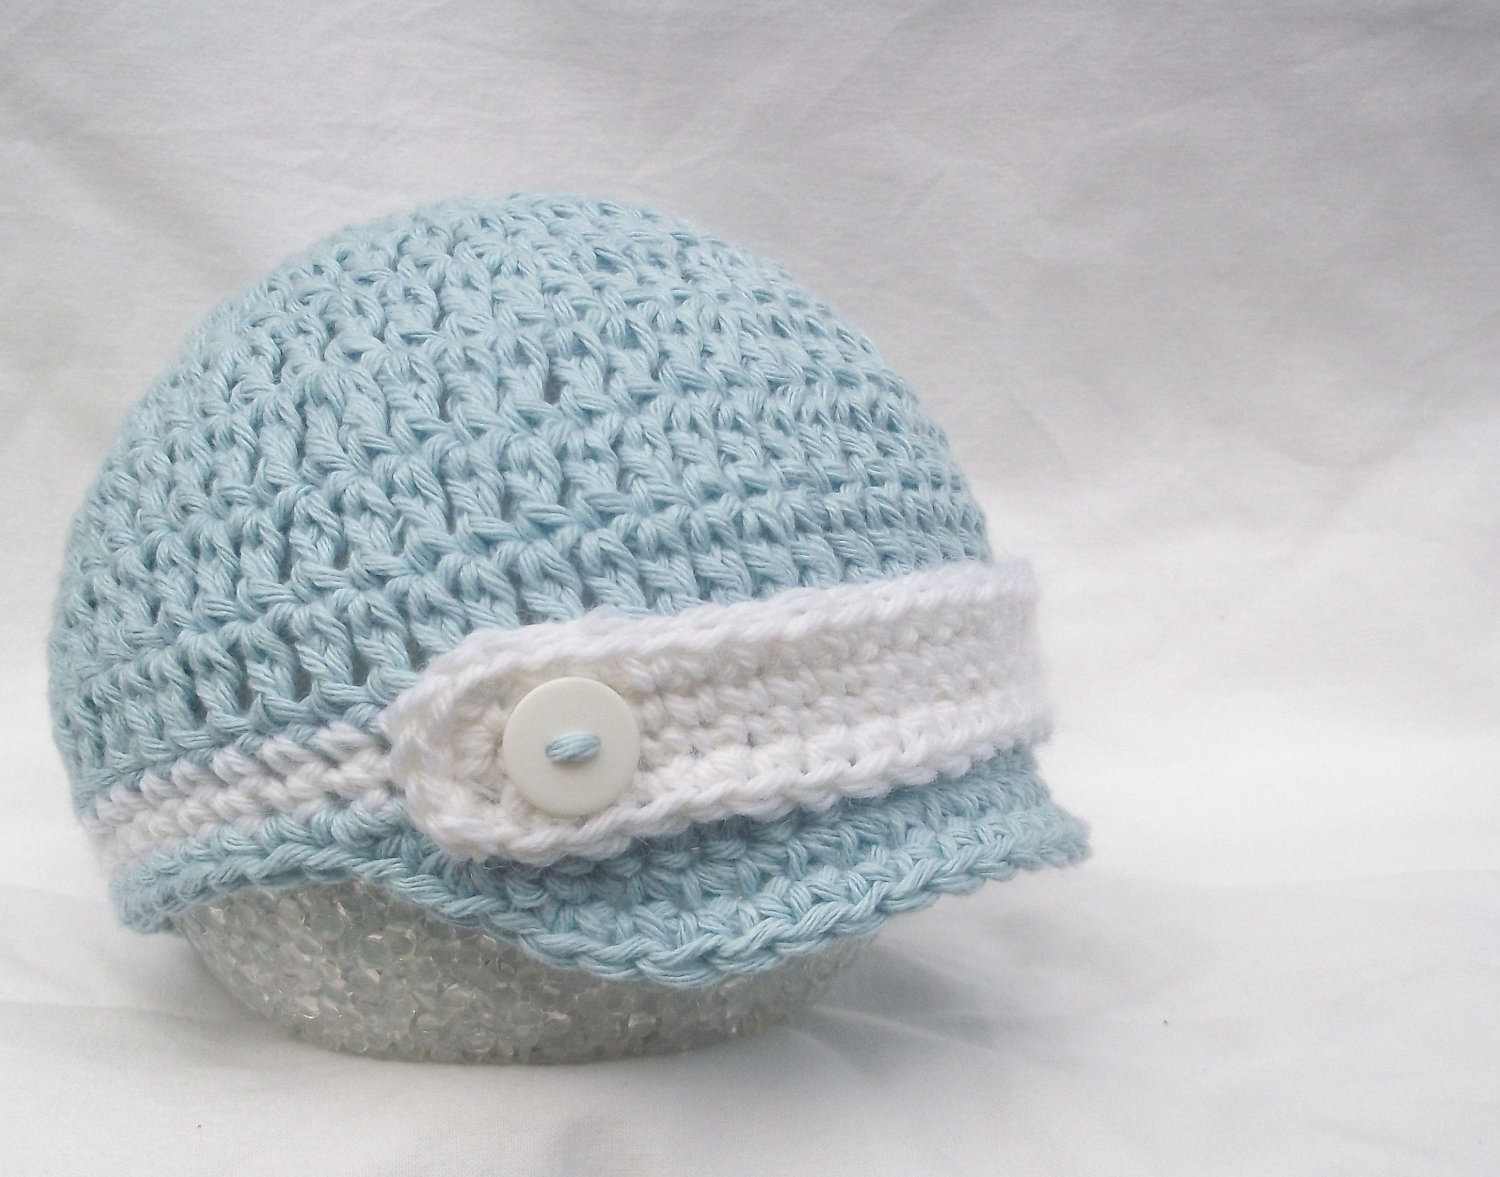 Crochet Patterns Baby Hats : Patterns For Baby Boys Hats Free Crochet Baby Boy Hat Patterns ...